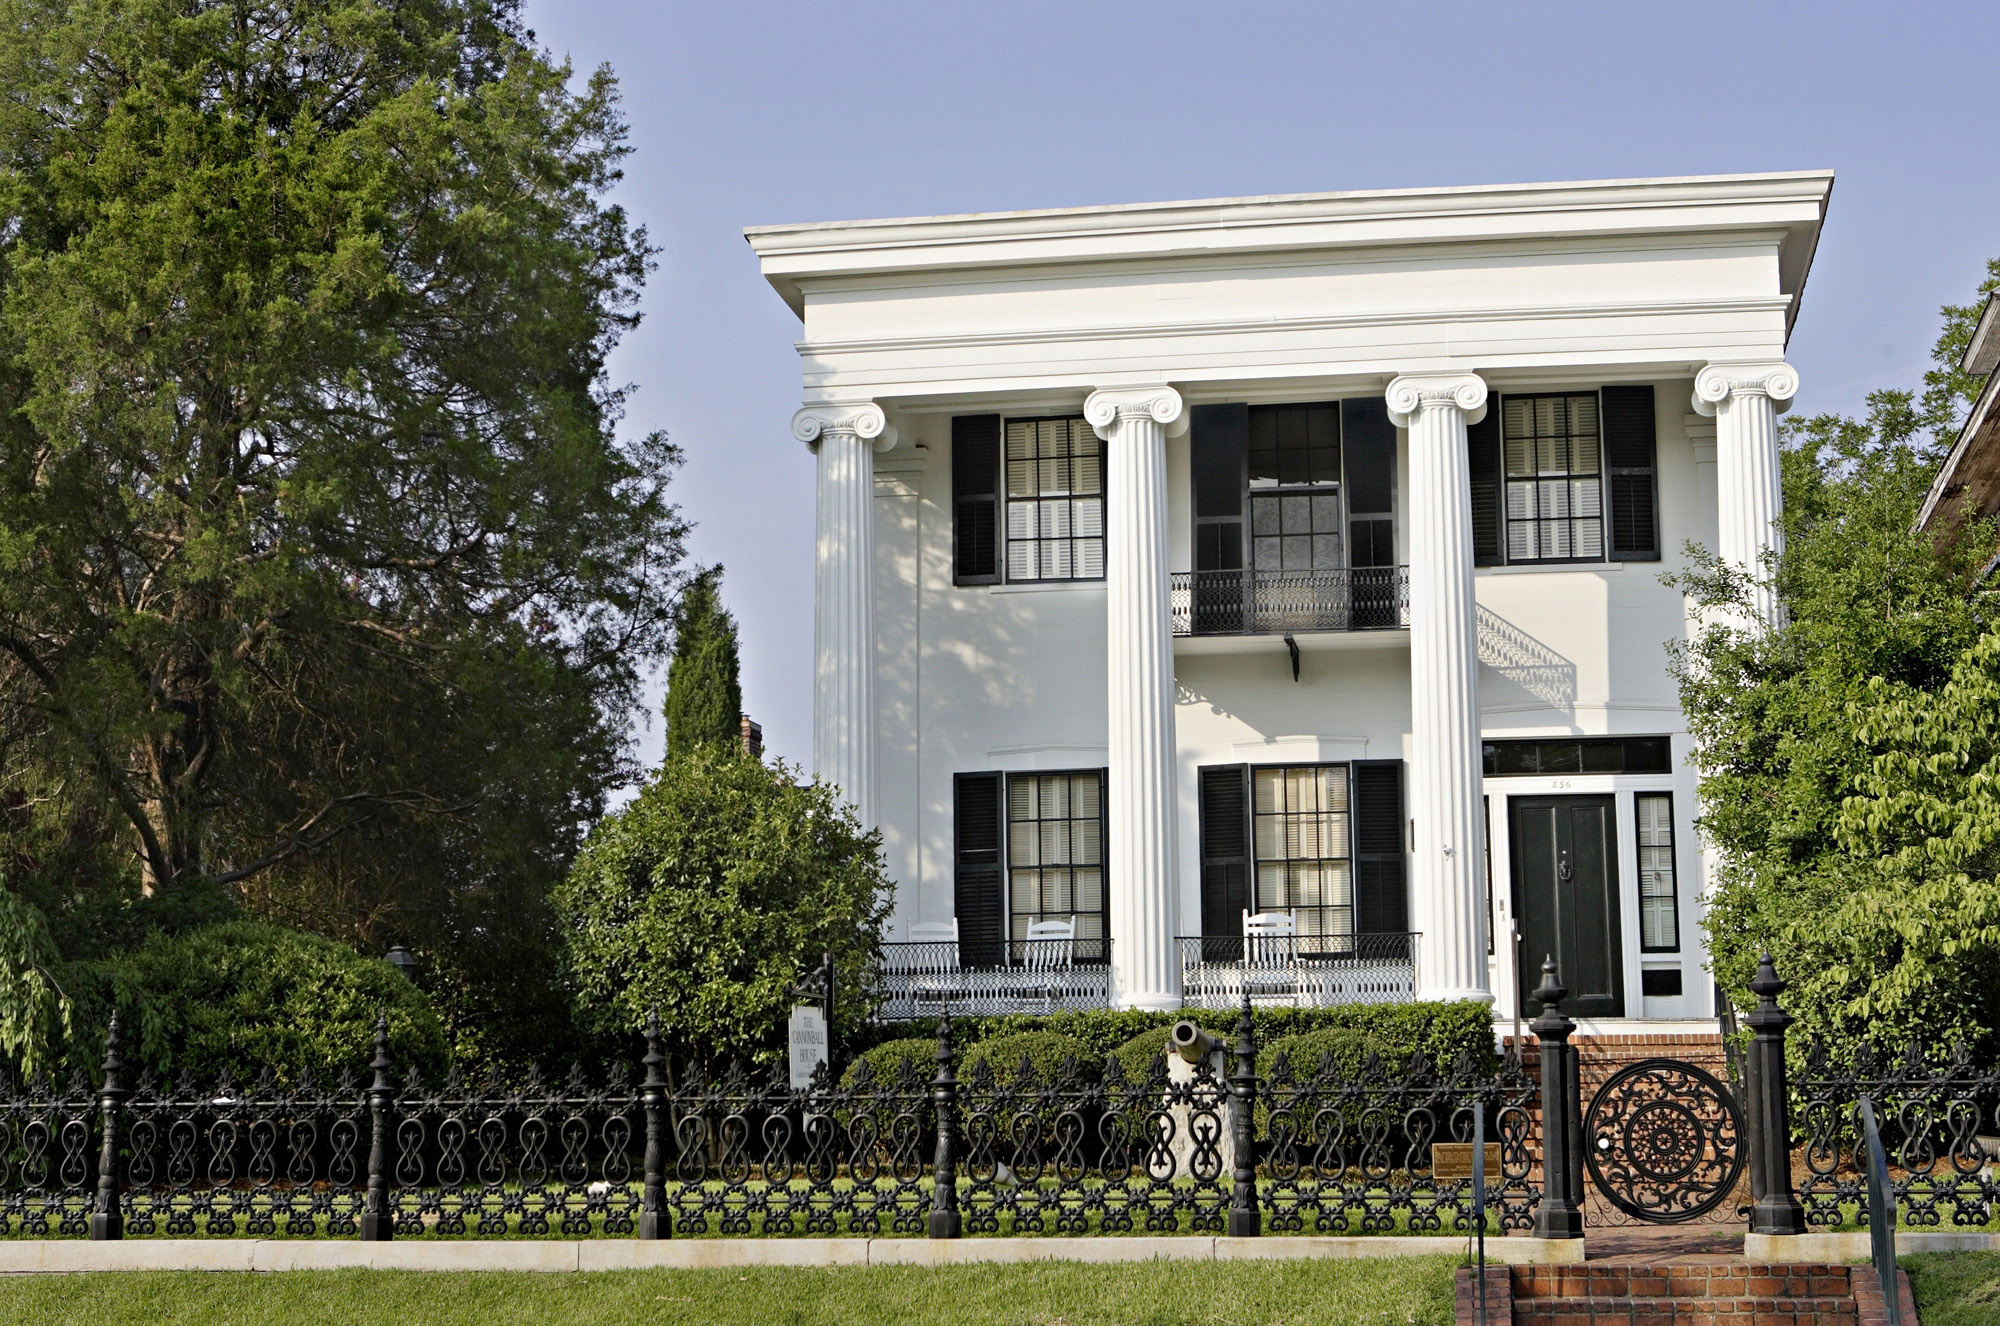 The Cannonball House in Macon, Georgia